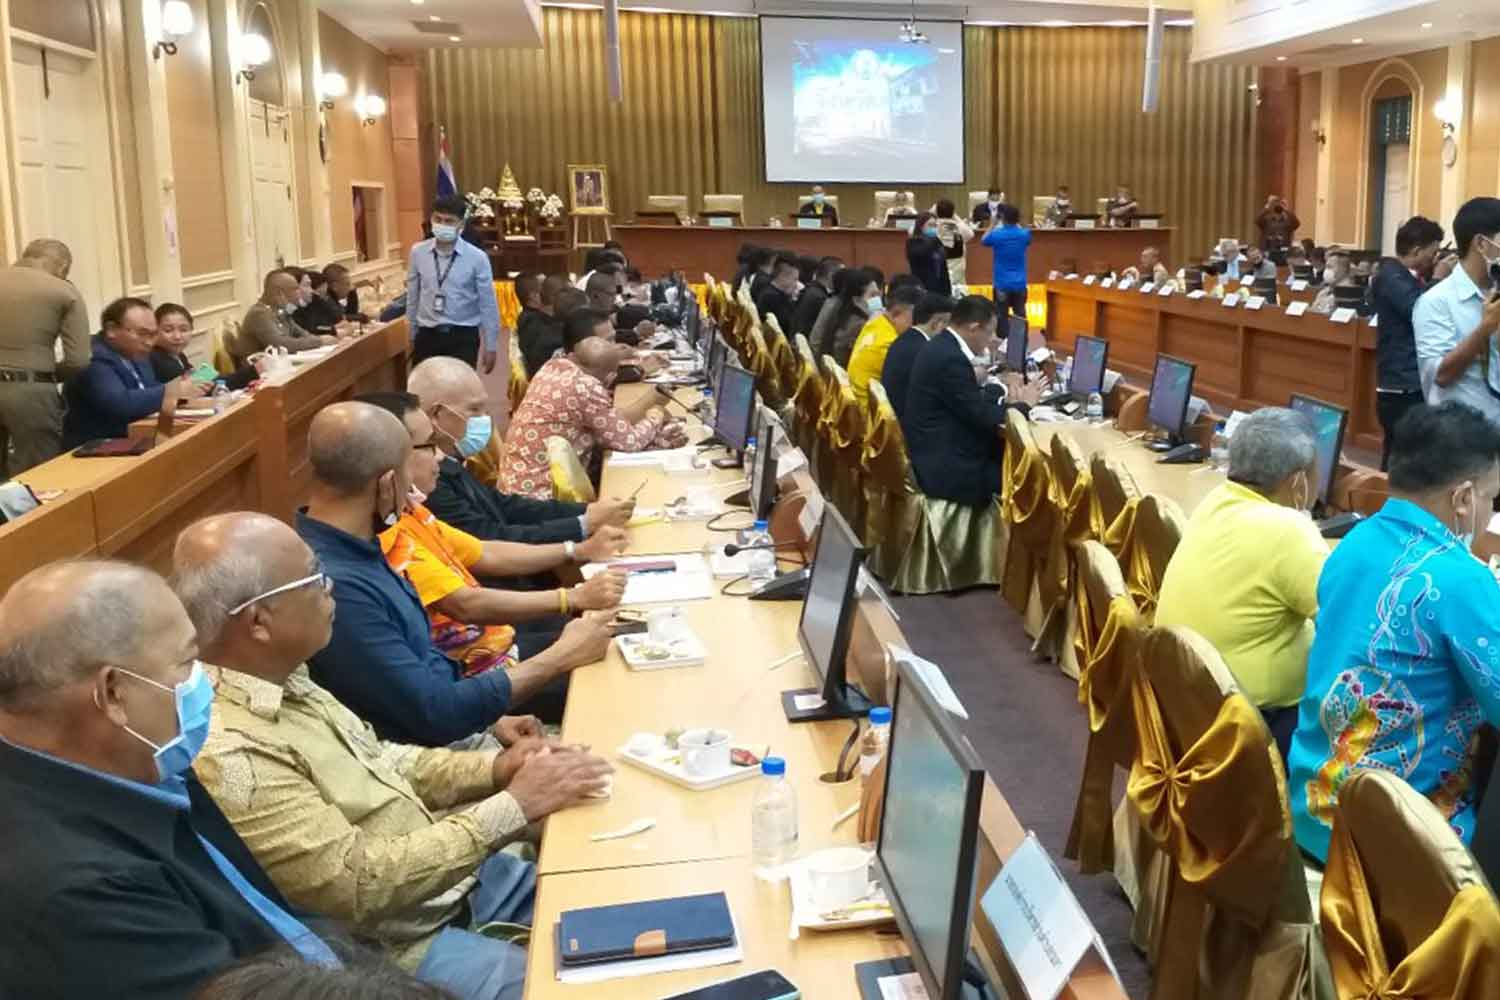 Officials of Phuket and Government House meet on Thursday to prepare a cabinet meeting in the southern resort province next month. (Photo by Achadthaya Chuenniran)